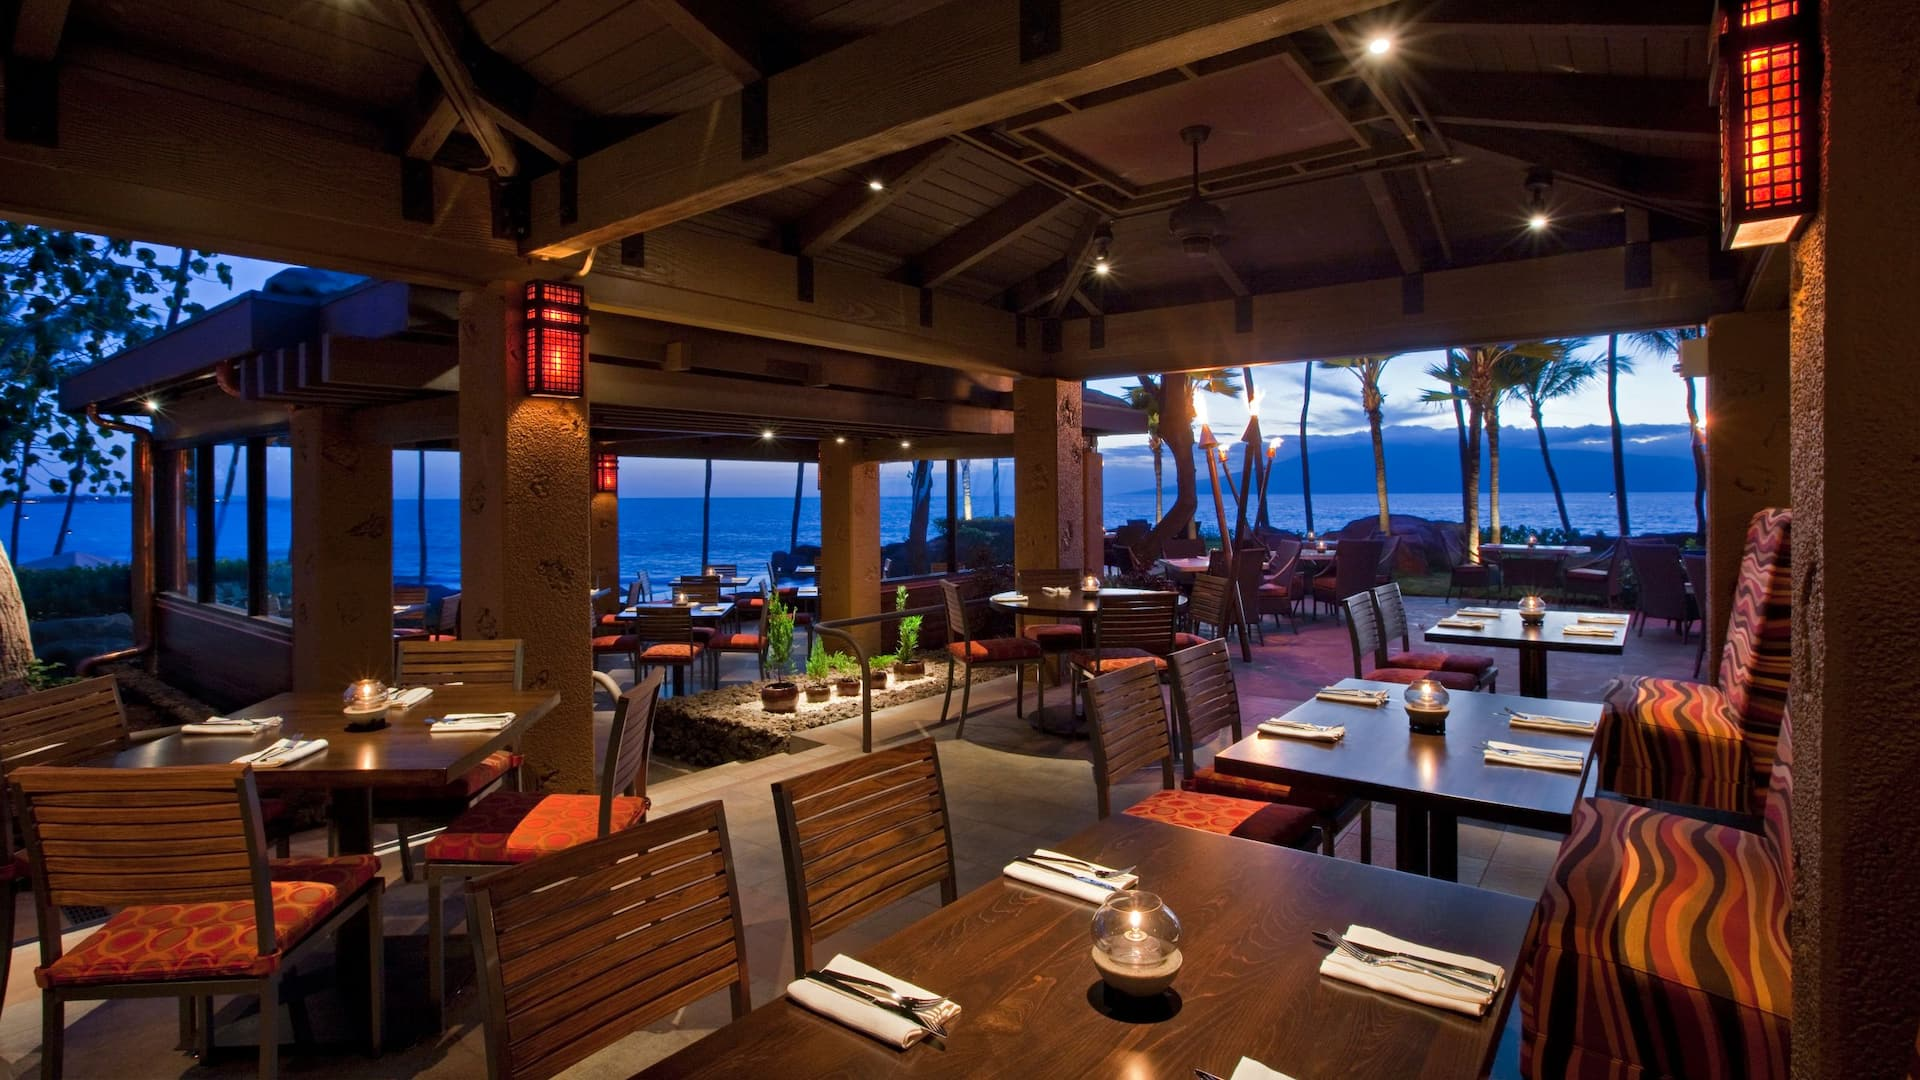 Japengo Restaurant Hyatt Regency Maui Resort and Spa